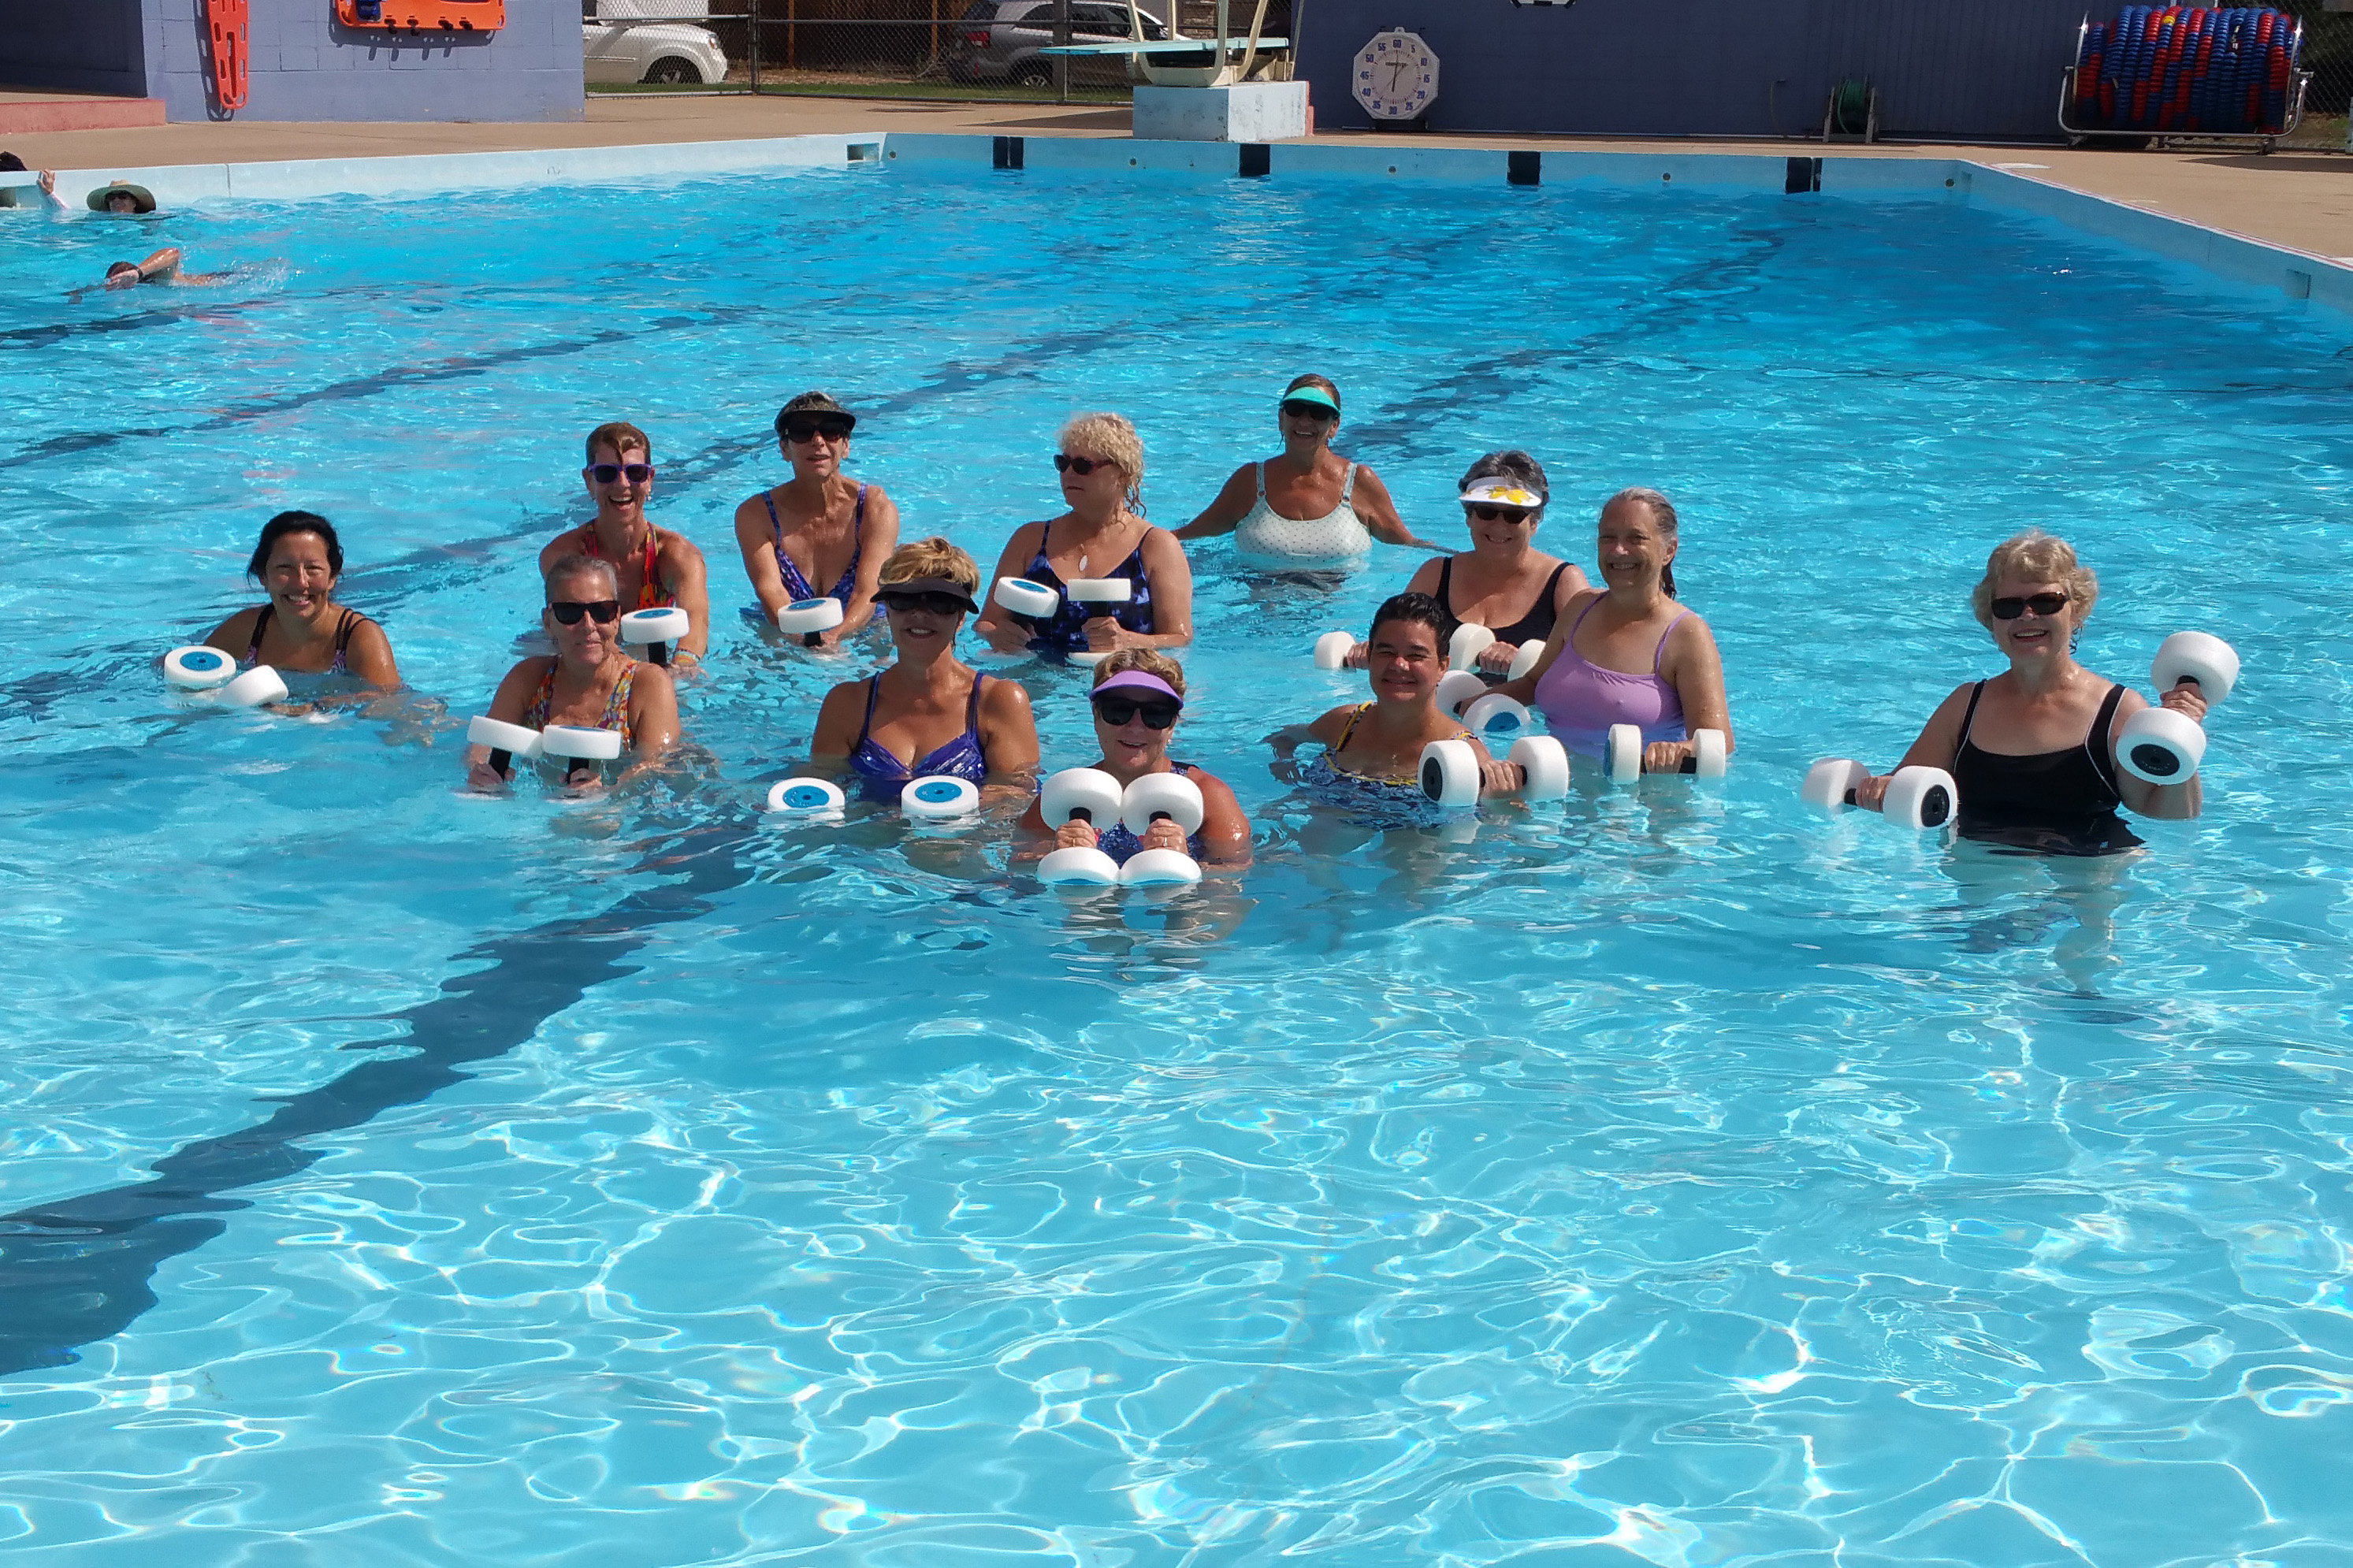 An aqua fitness class with weights takes place in a city pool.